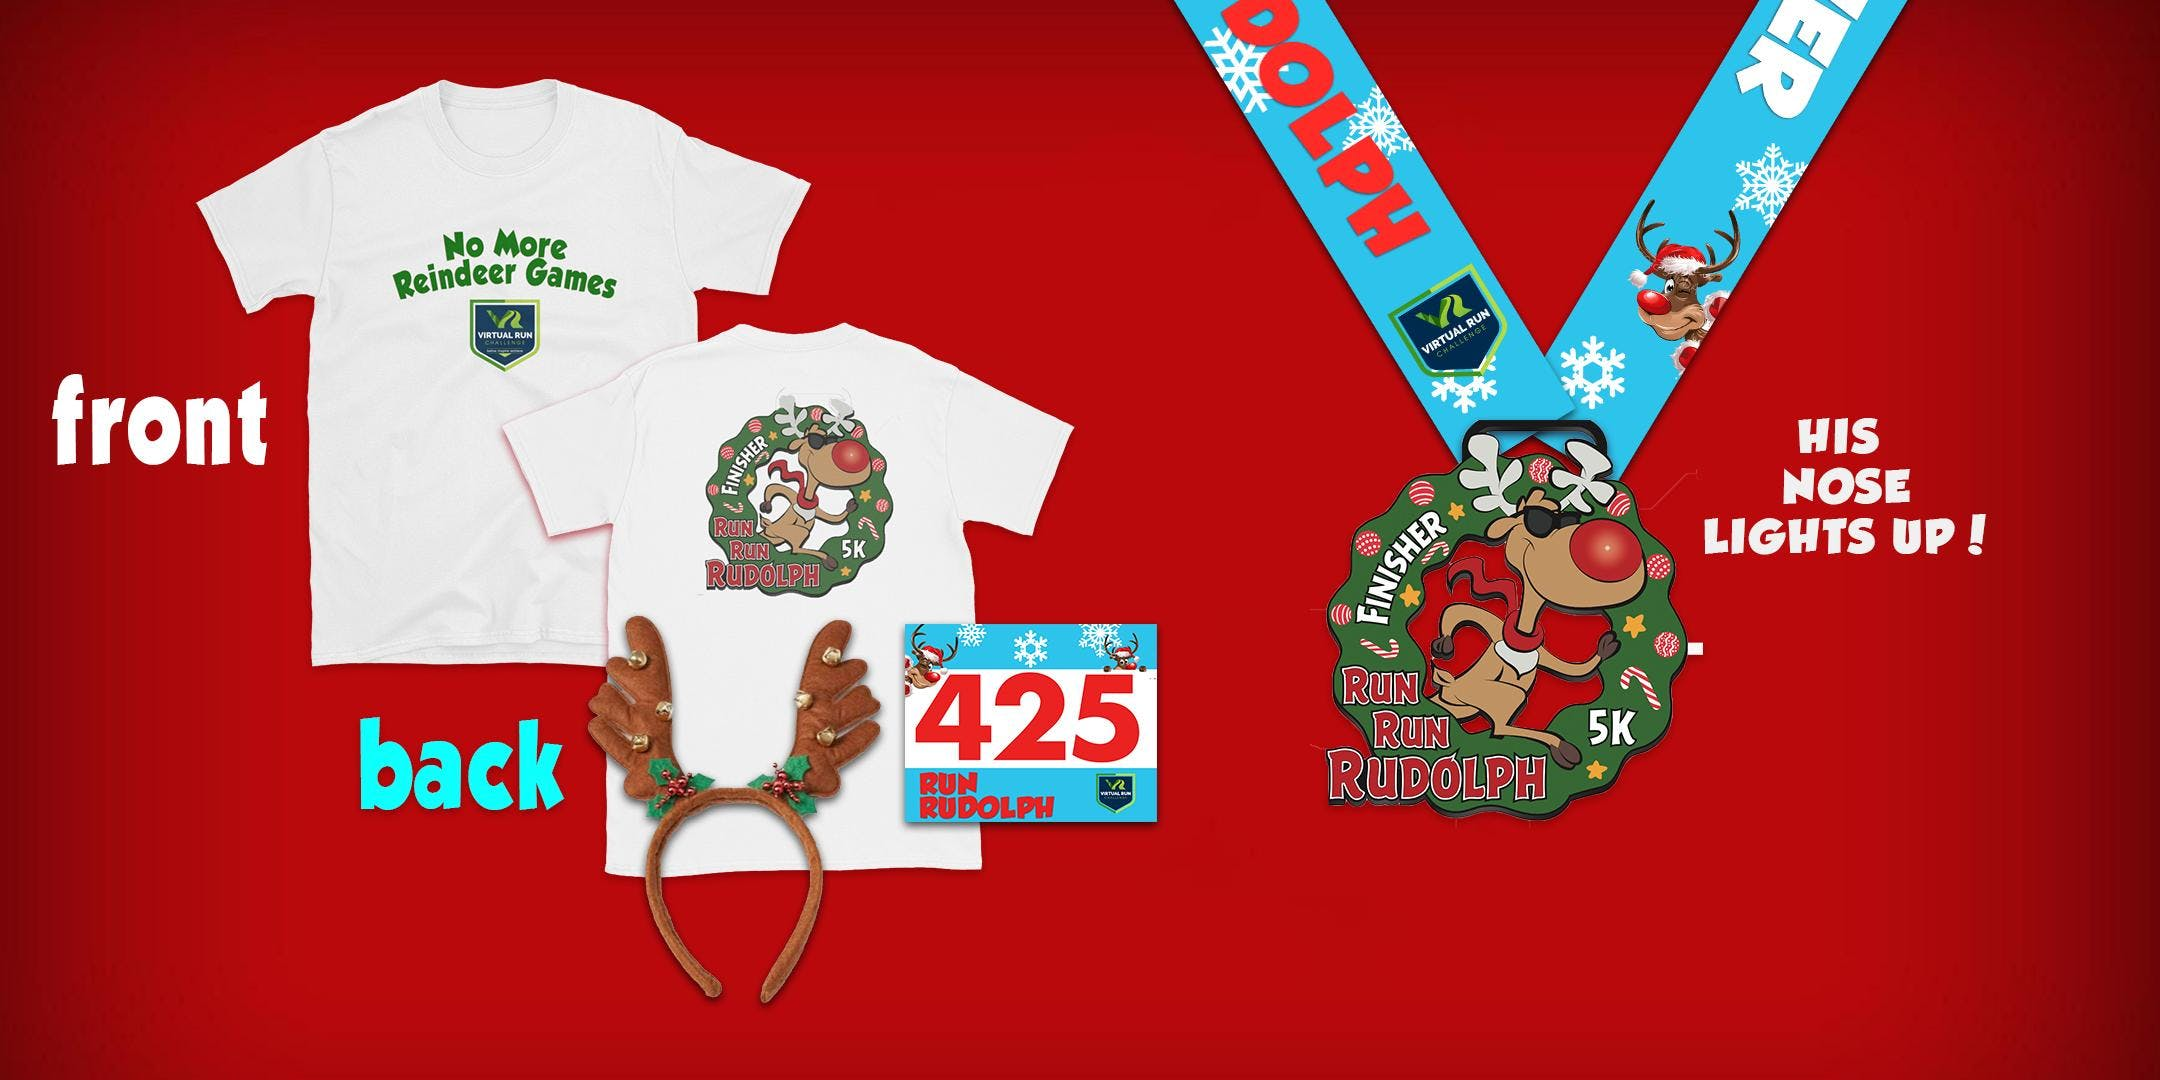 Run Run Rudolph Virtual 5k Run Walk - Peoria